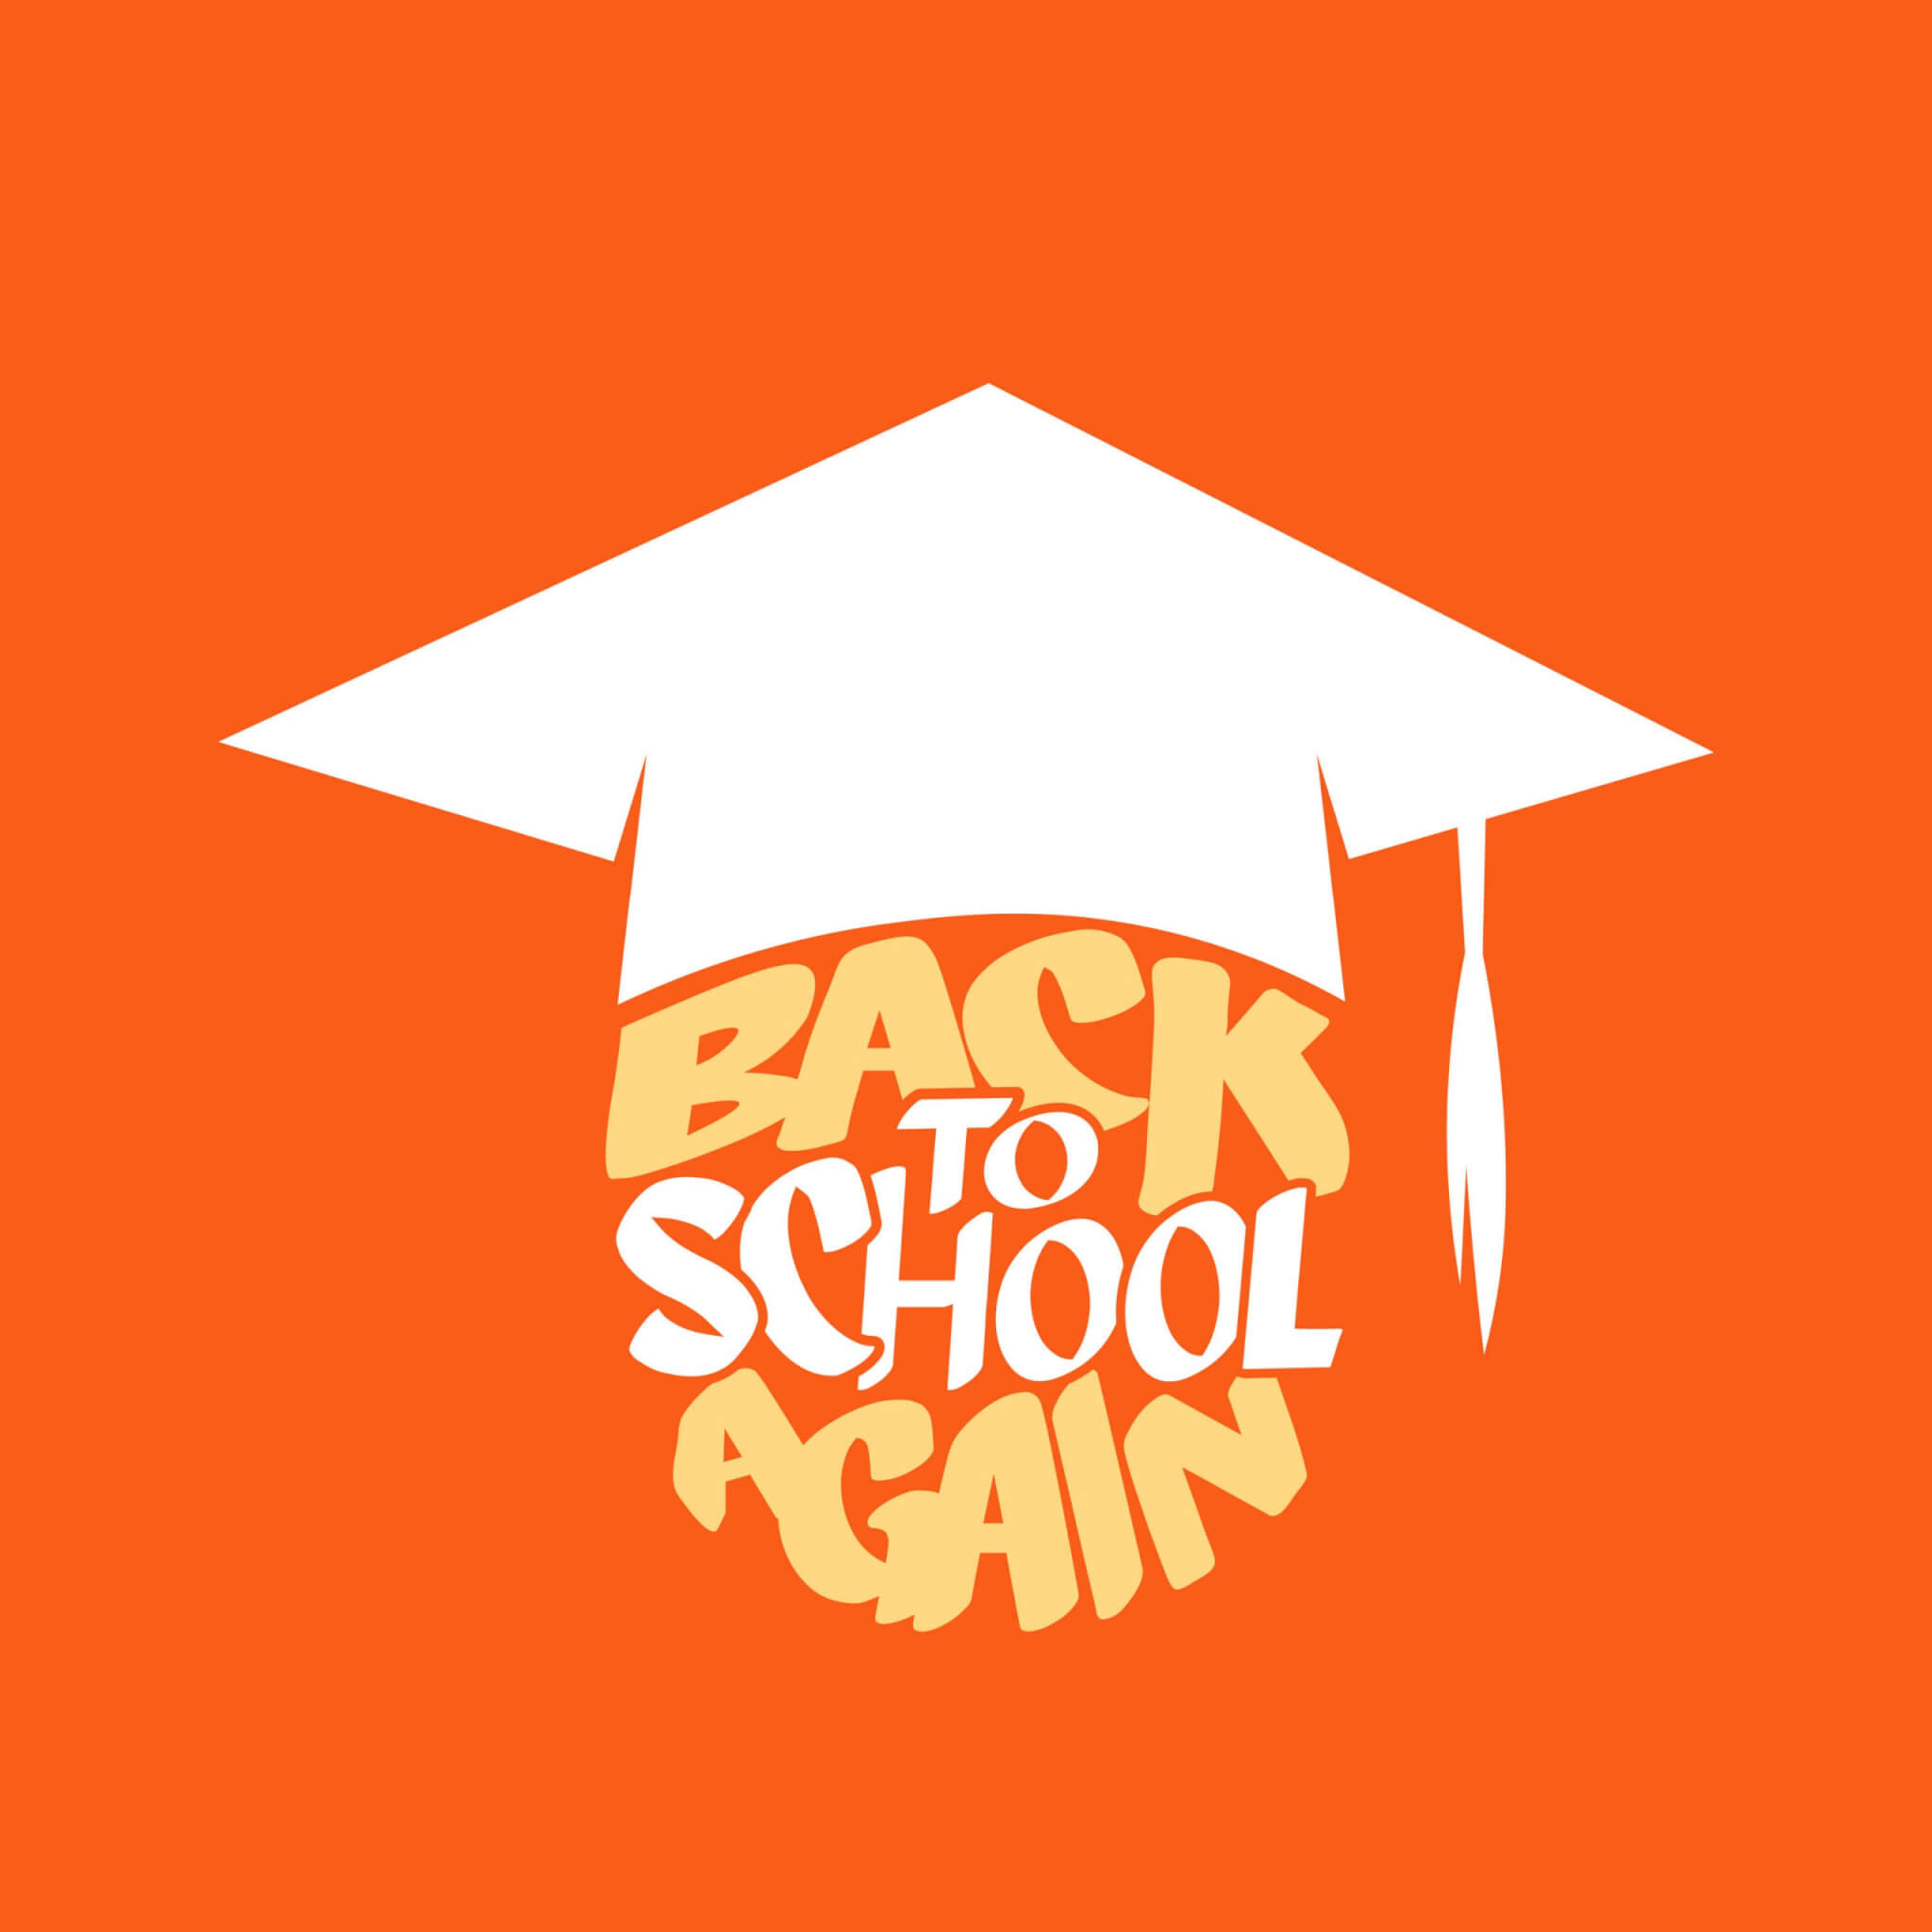 Back To School Again podcast logo